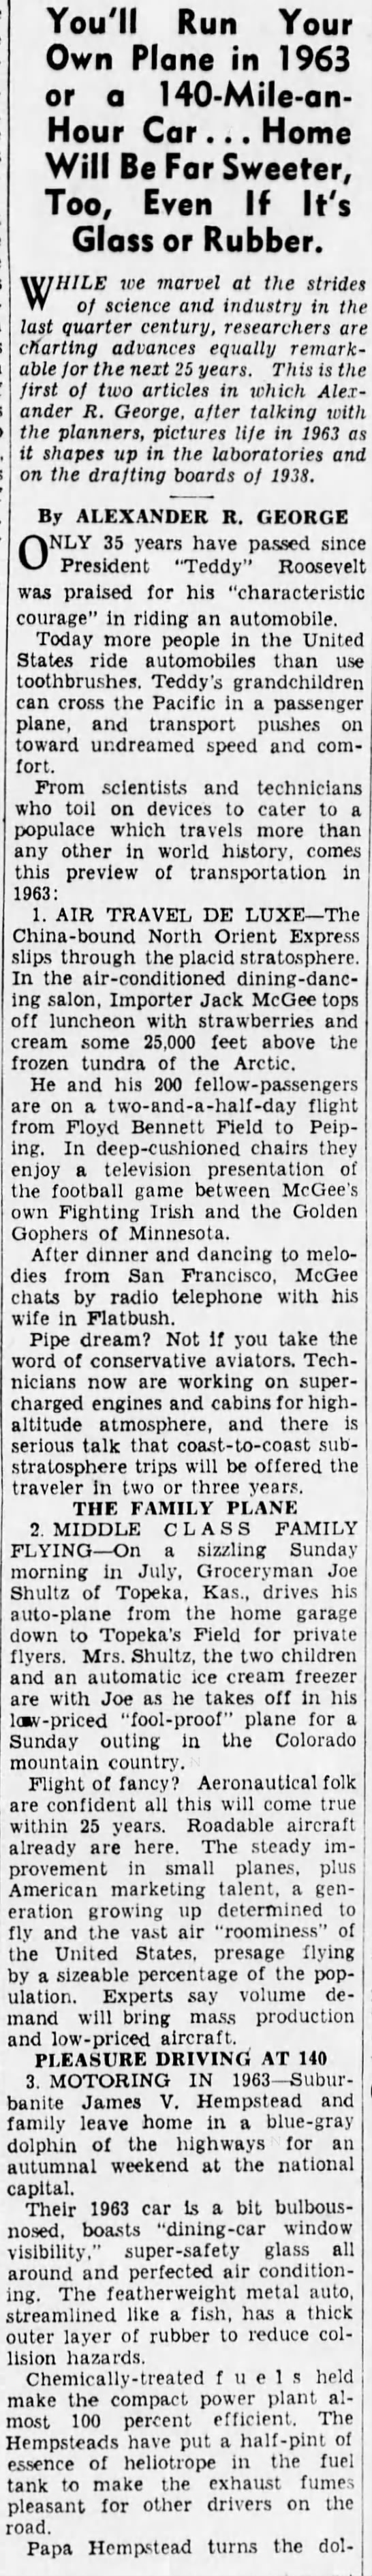 3863b Old Print Article: What Life Will Be Like In 1963, Brooklyn Daily Eagle (1938)